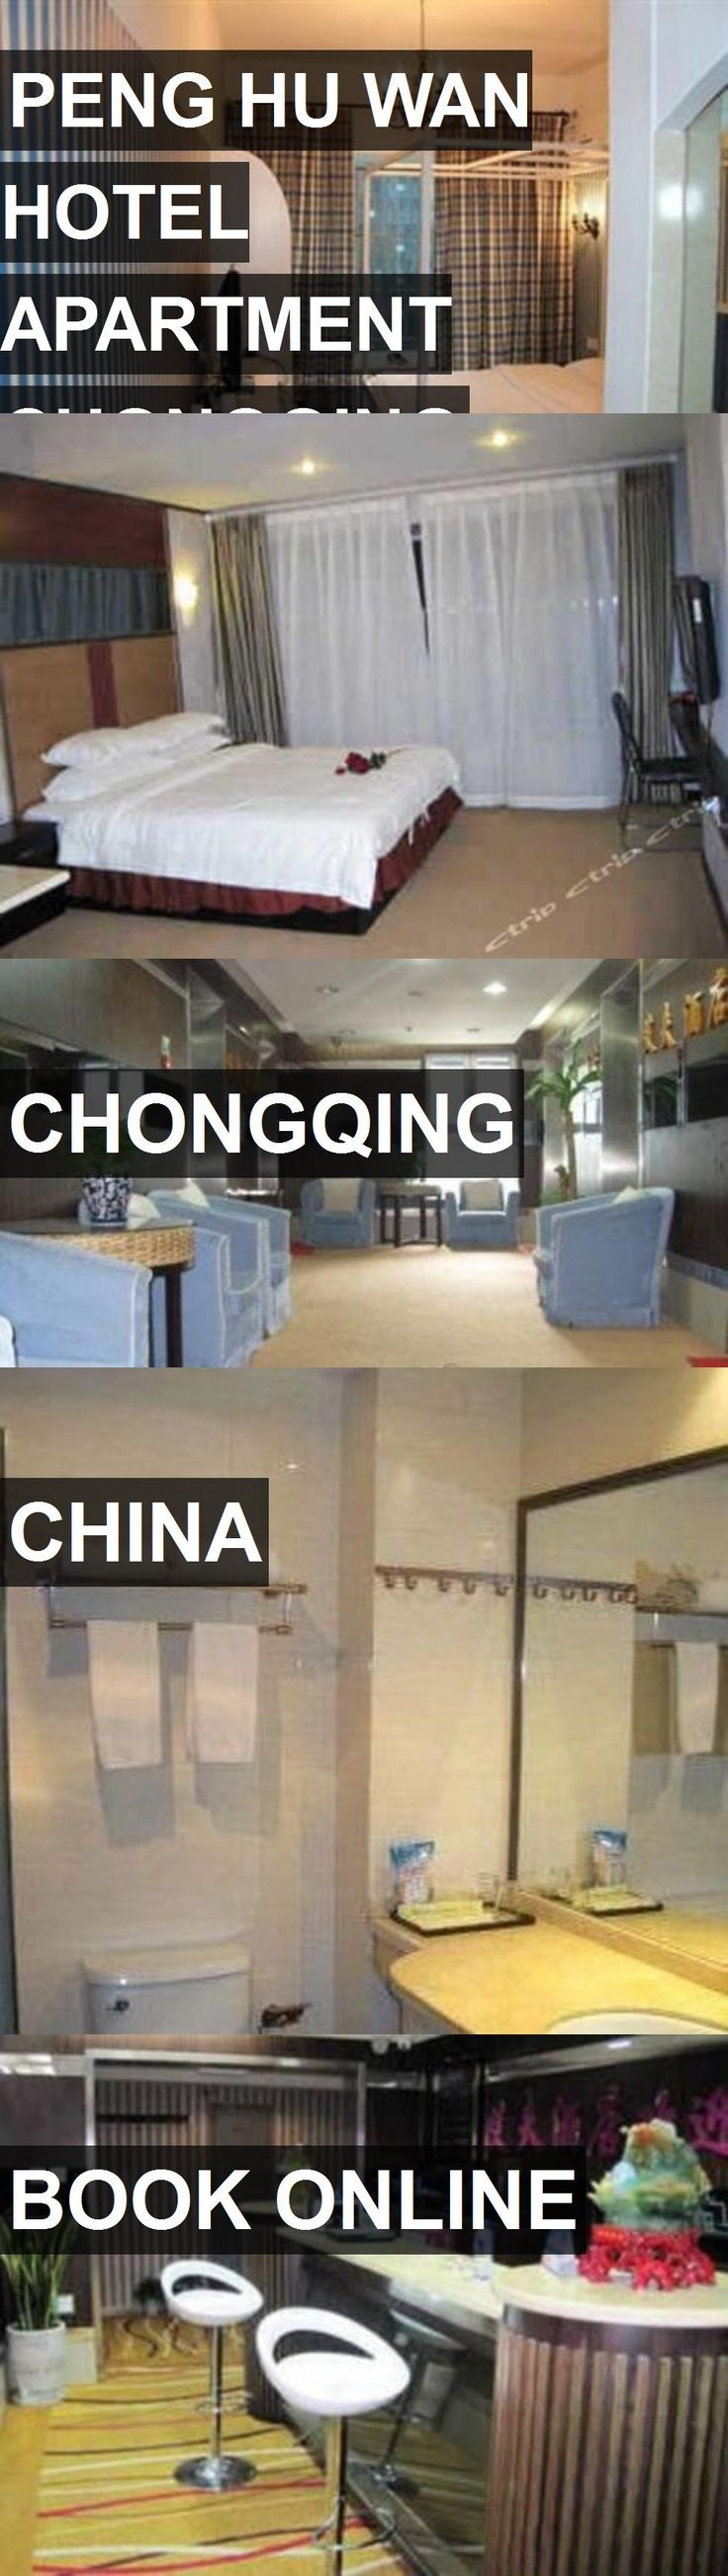 PENG HU WAN HOTEL APARTMENT CHONQQING in Chongqing, China. For more information, photos, reviews and best prices please follow the link. #China #Chongqing #travel #vacation #hotel #apartment